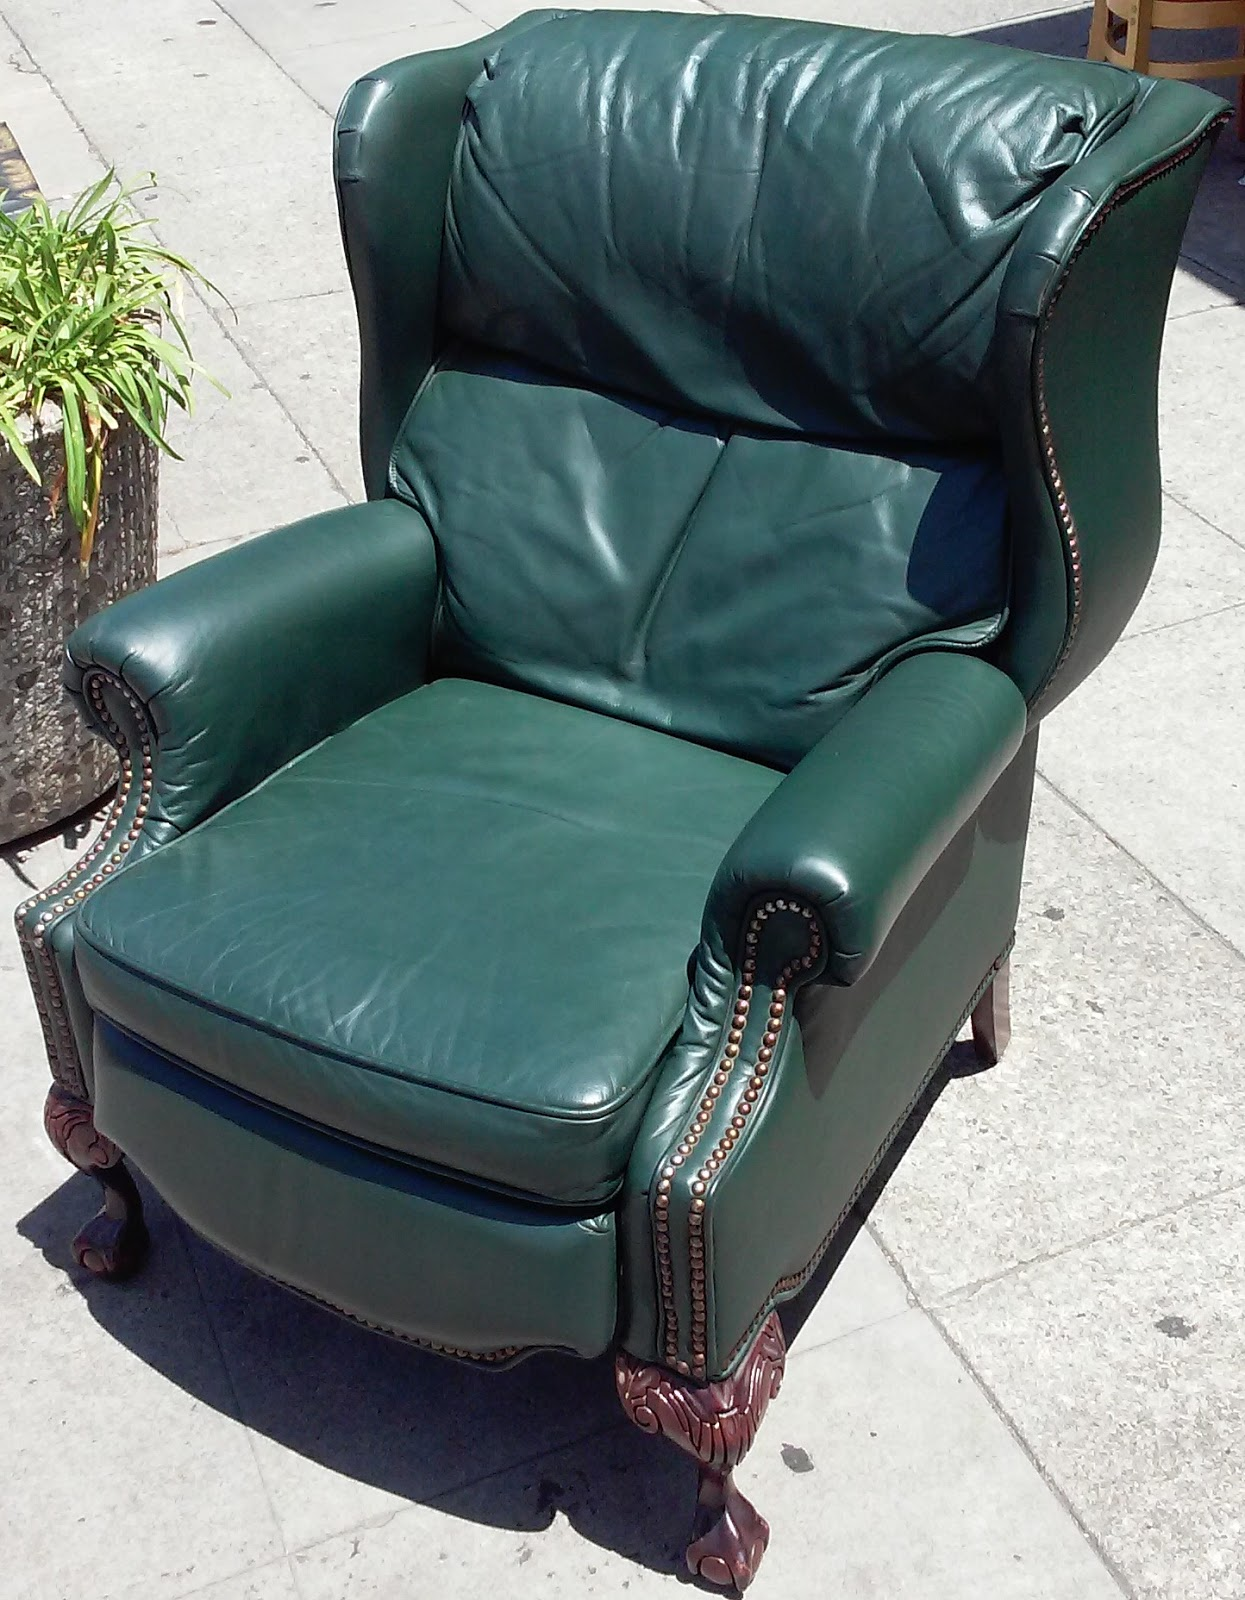 Leather Wingback Chairs South Africa Kitchen Target Uhuru Furniture And Collectibles Sold Barcalounger